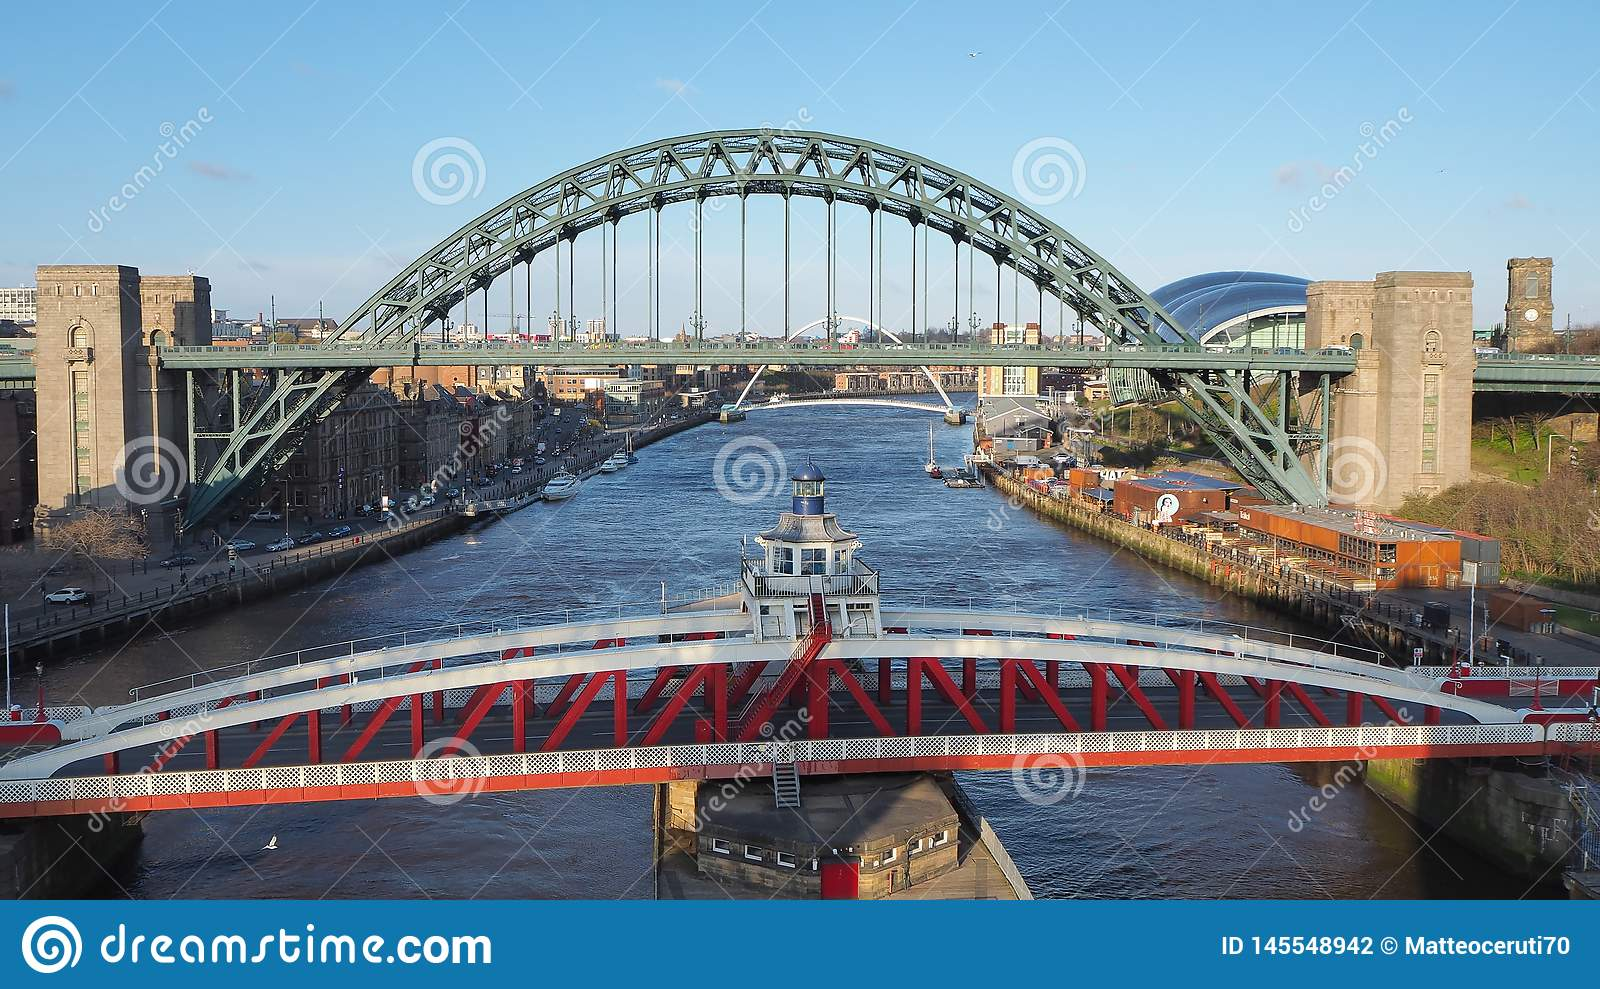 Newcastle Upon Tyne England United Kingdom The Tyne And The Swing Bridges Over The River Tyne Editorial Photography Image Of Icon Kingdom 145548942